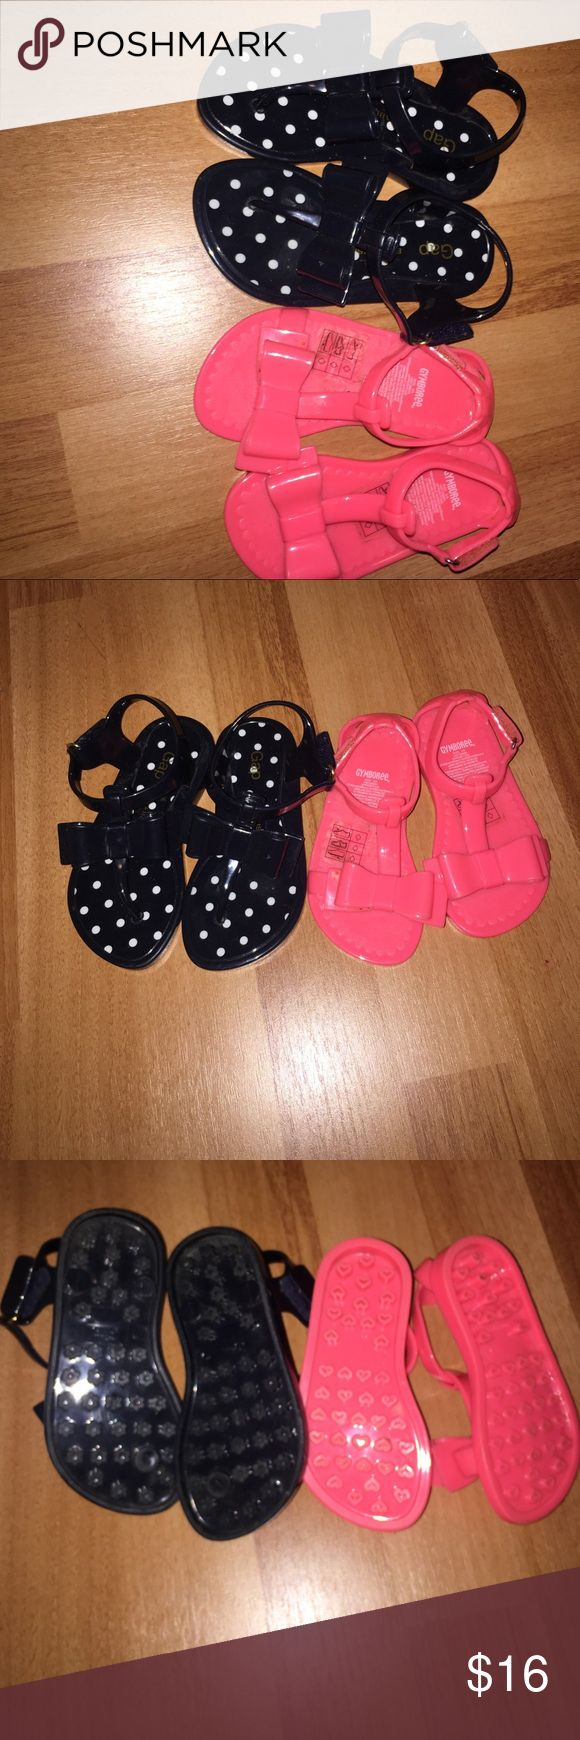 Jelly shoes lot toddler girls Great used condition. The blue and white gap shoes are a size 7 and the pink Gymboree shoes are a size 5/6 GAP Shoes #JellyShoesFashion